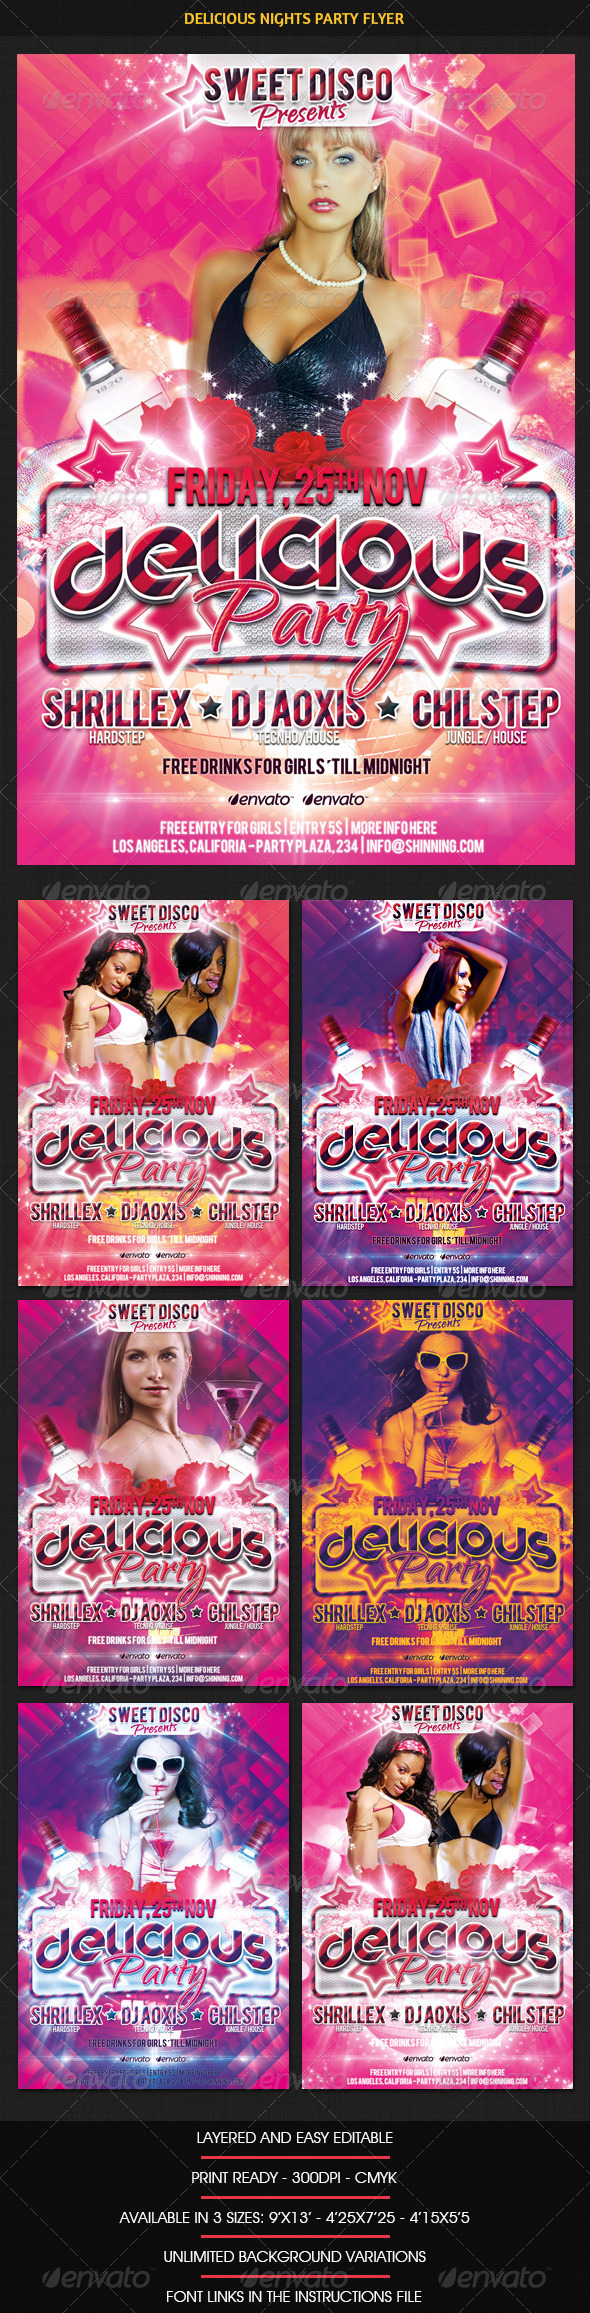 Delicious Nights Party Flyer - Print Templates